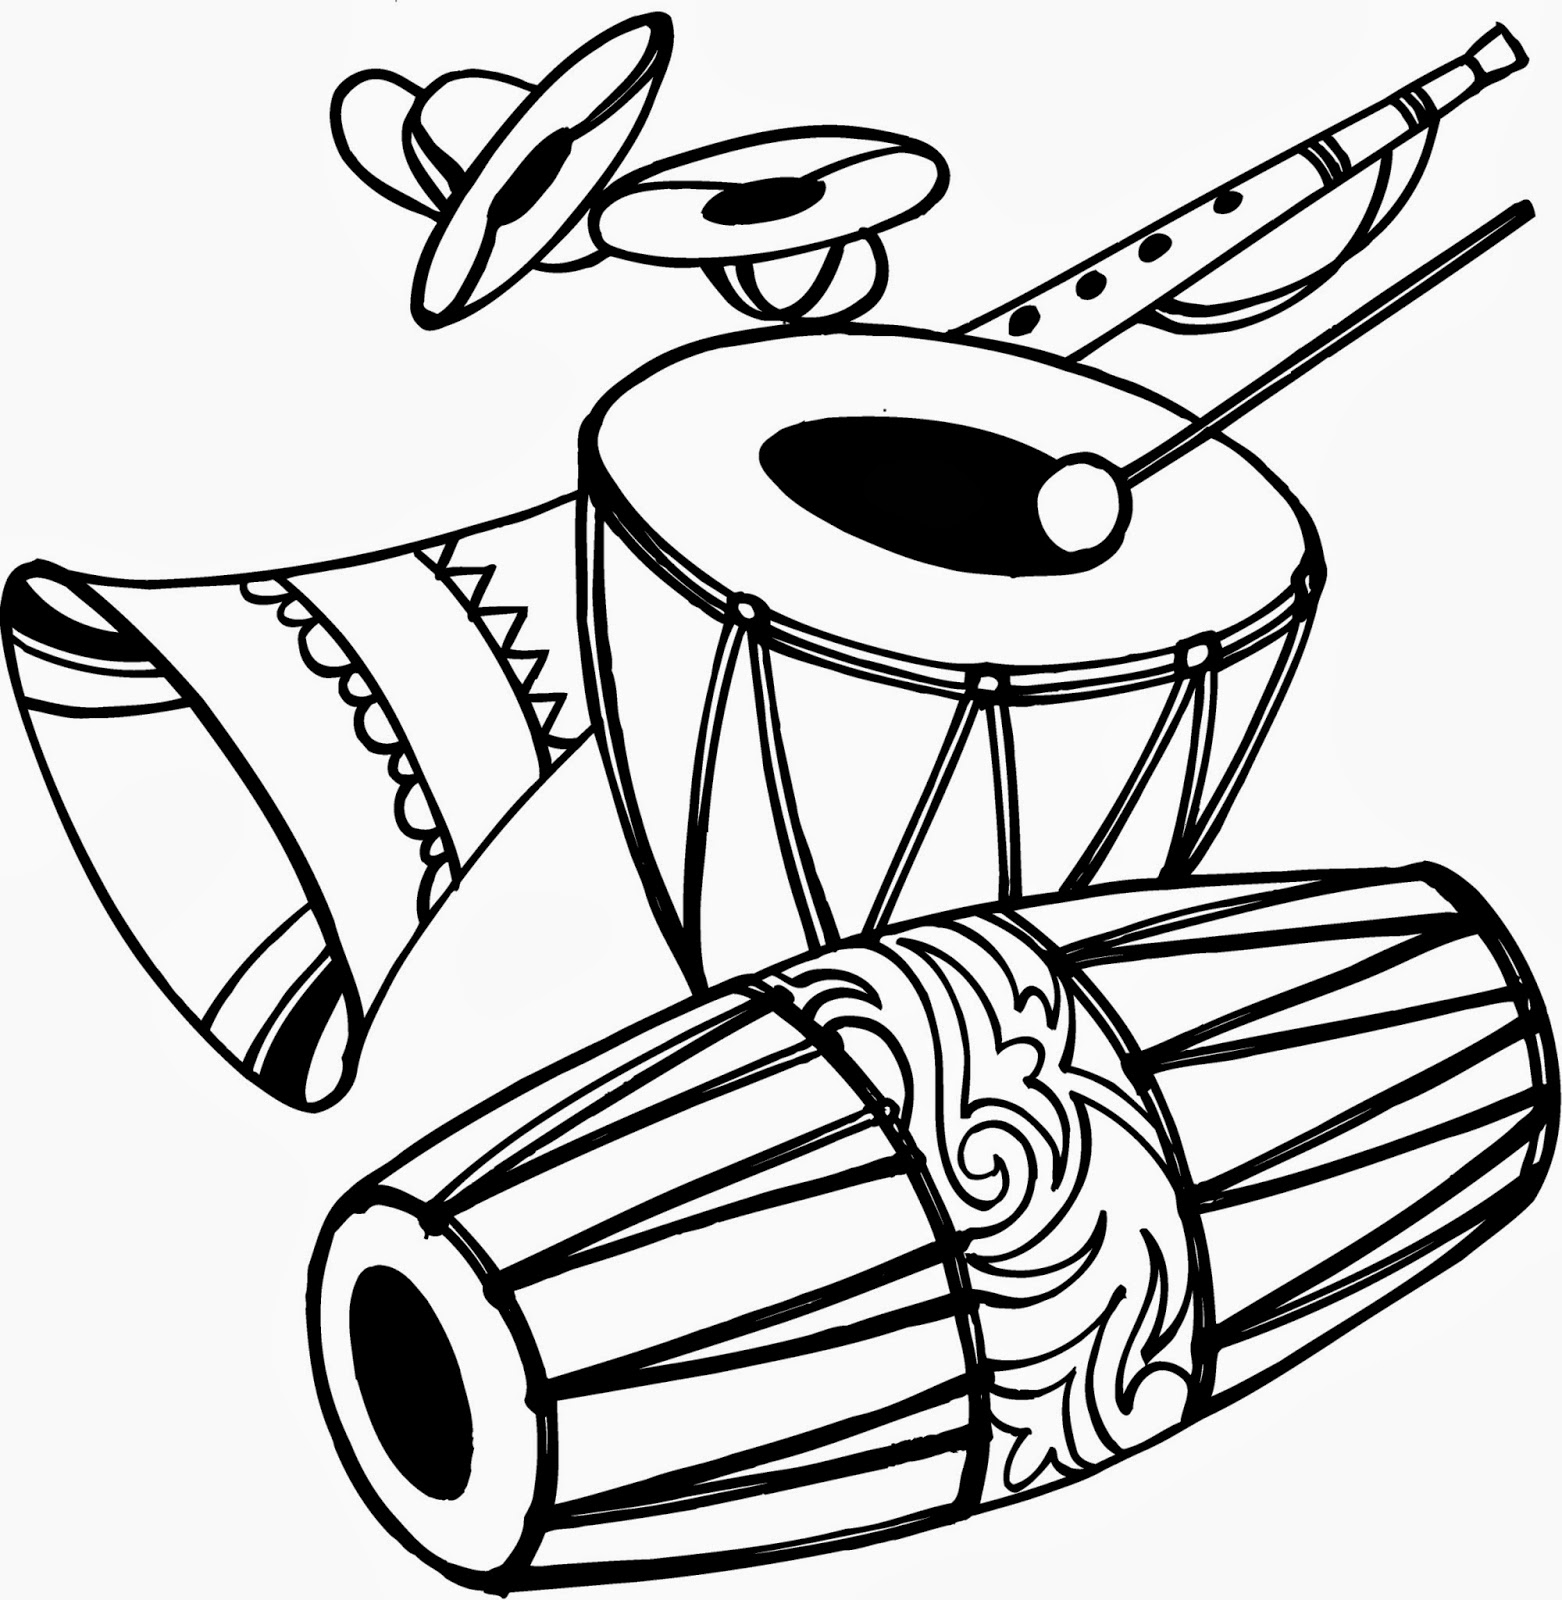 Dhol clipart image download Dhol Cliparts - Cliparts Zone image download